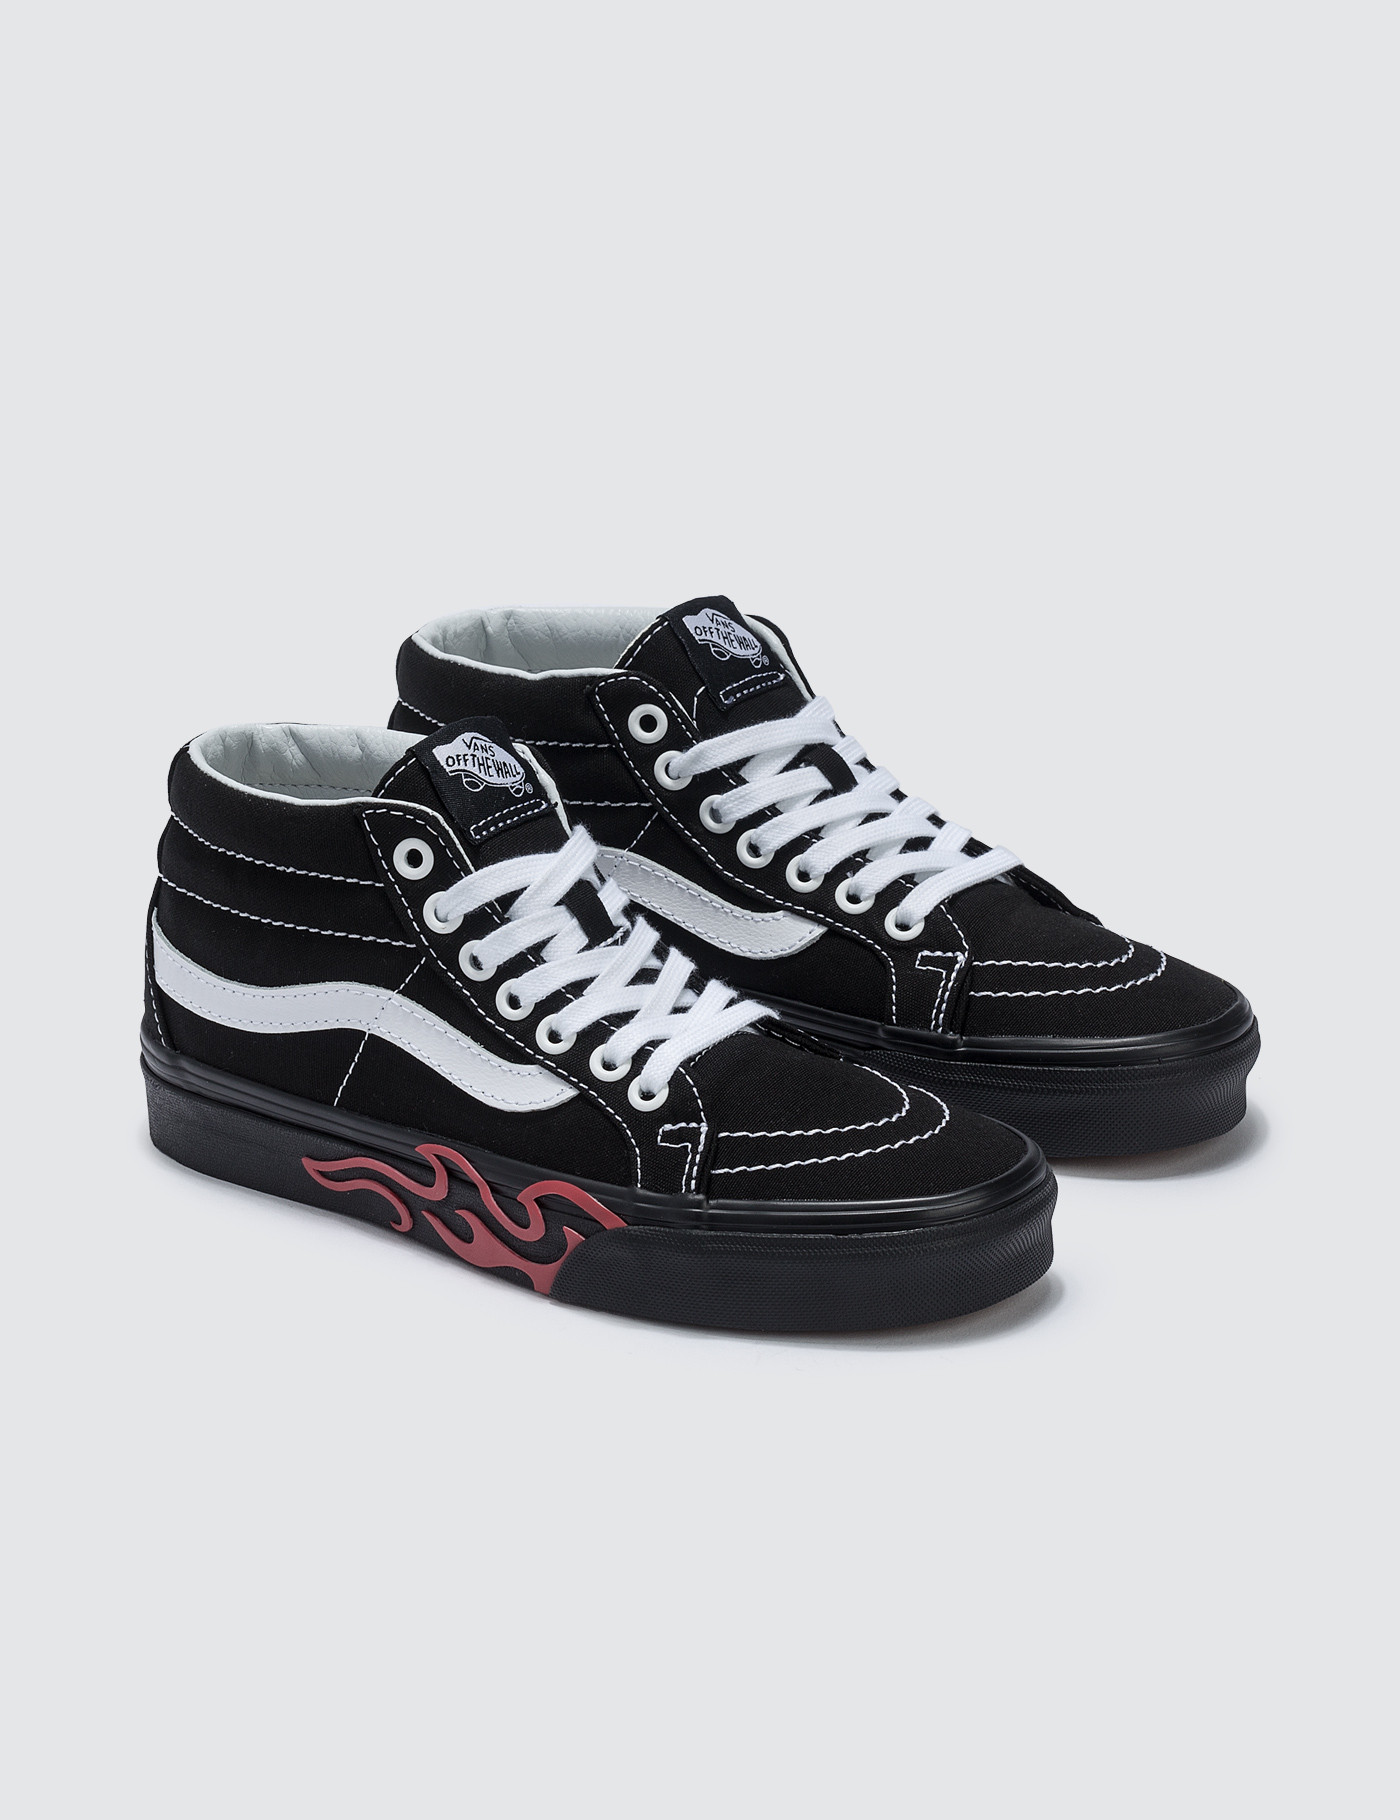 65e18846be40cb Buy Original Vans Flame Cut Out Sk8-mid Reissue at Indonesia